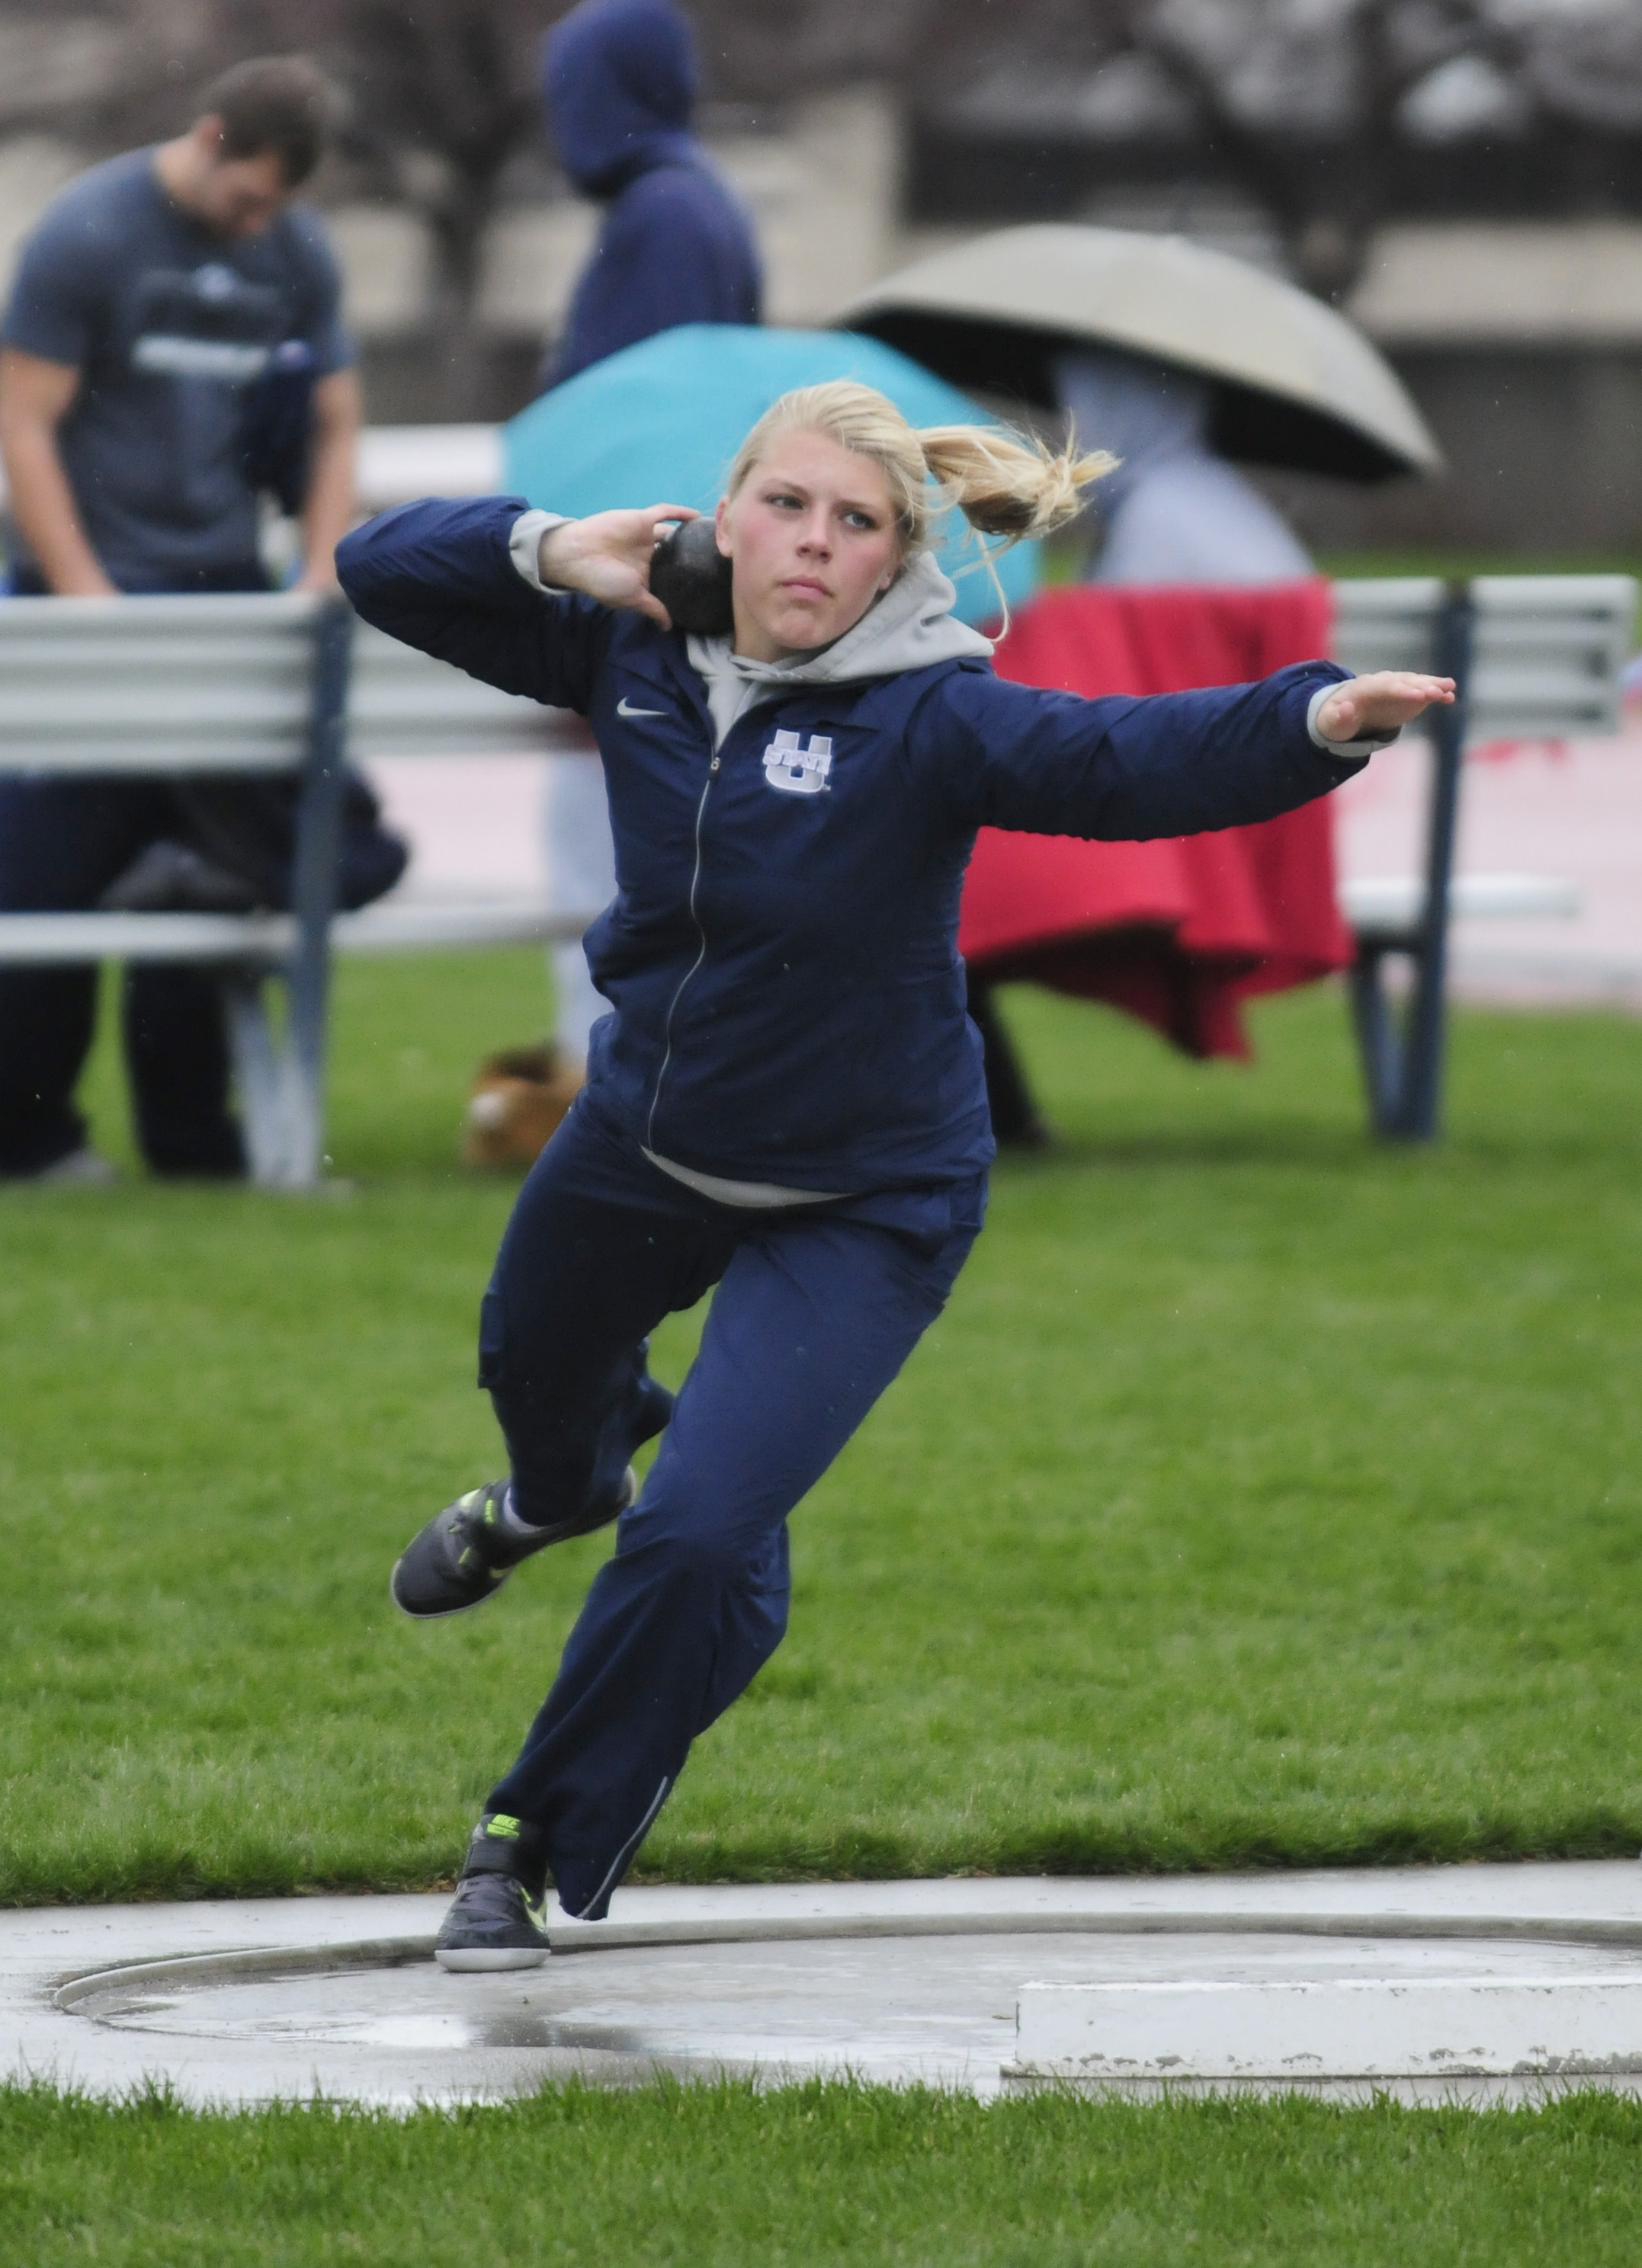 Utah State's outdoor track & field teams recorded four event wins at the Weber State hosted